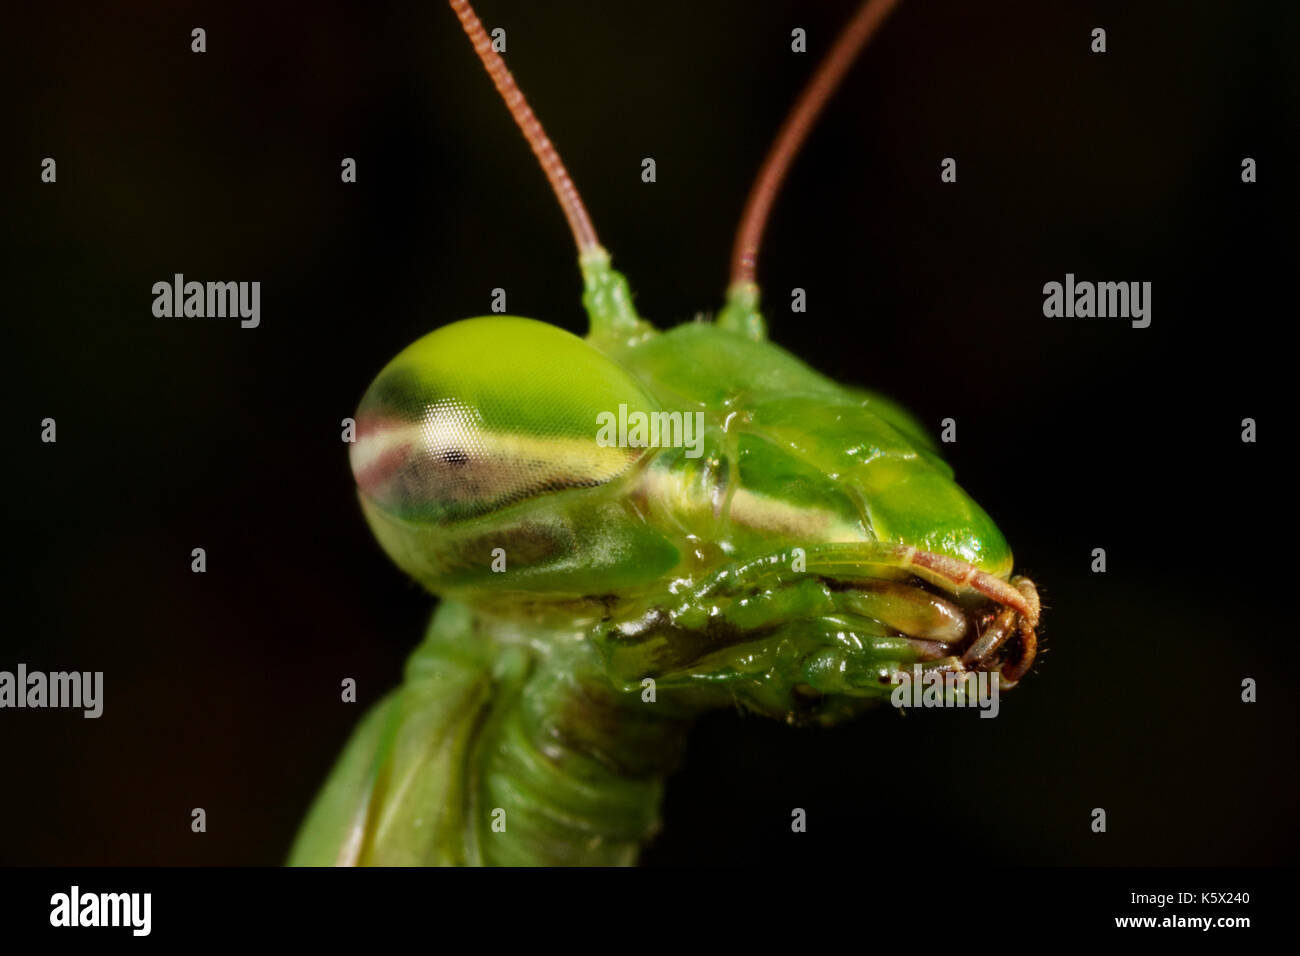 The European mantis (praying mantis) portrait - Stock Image